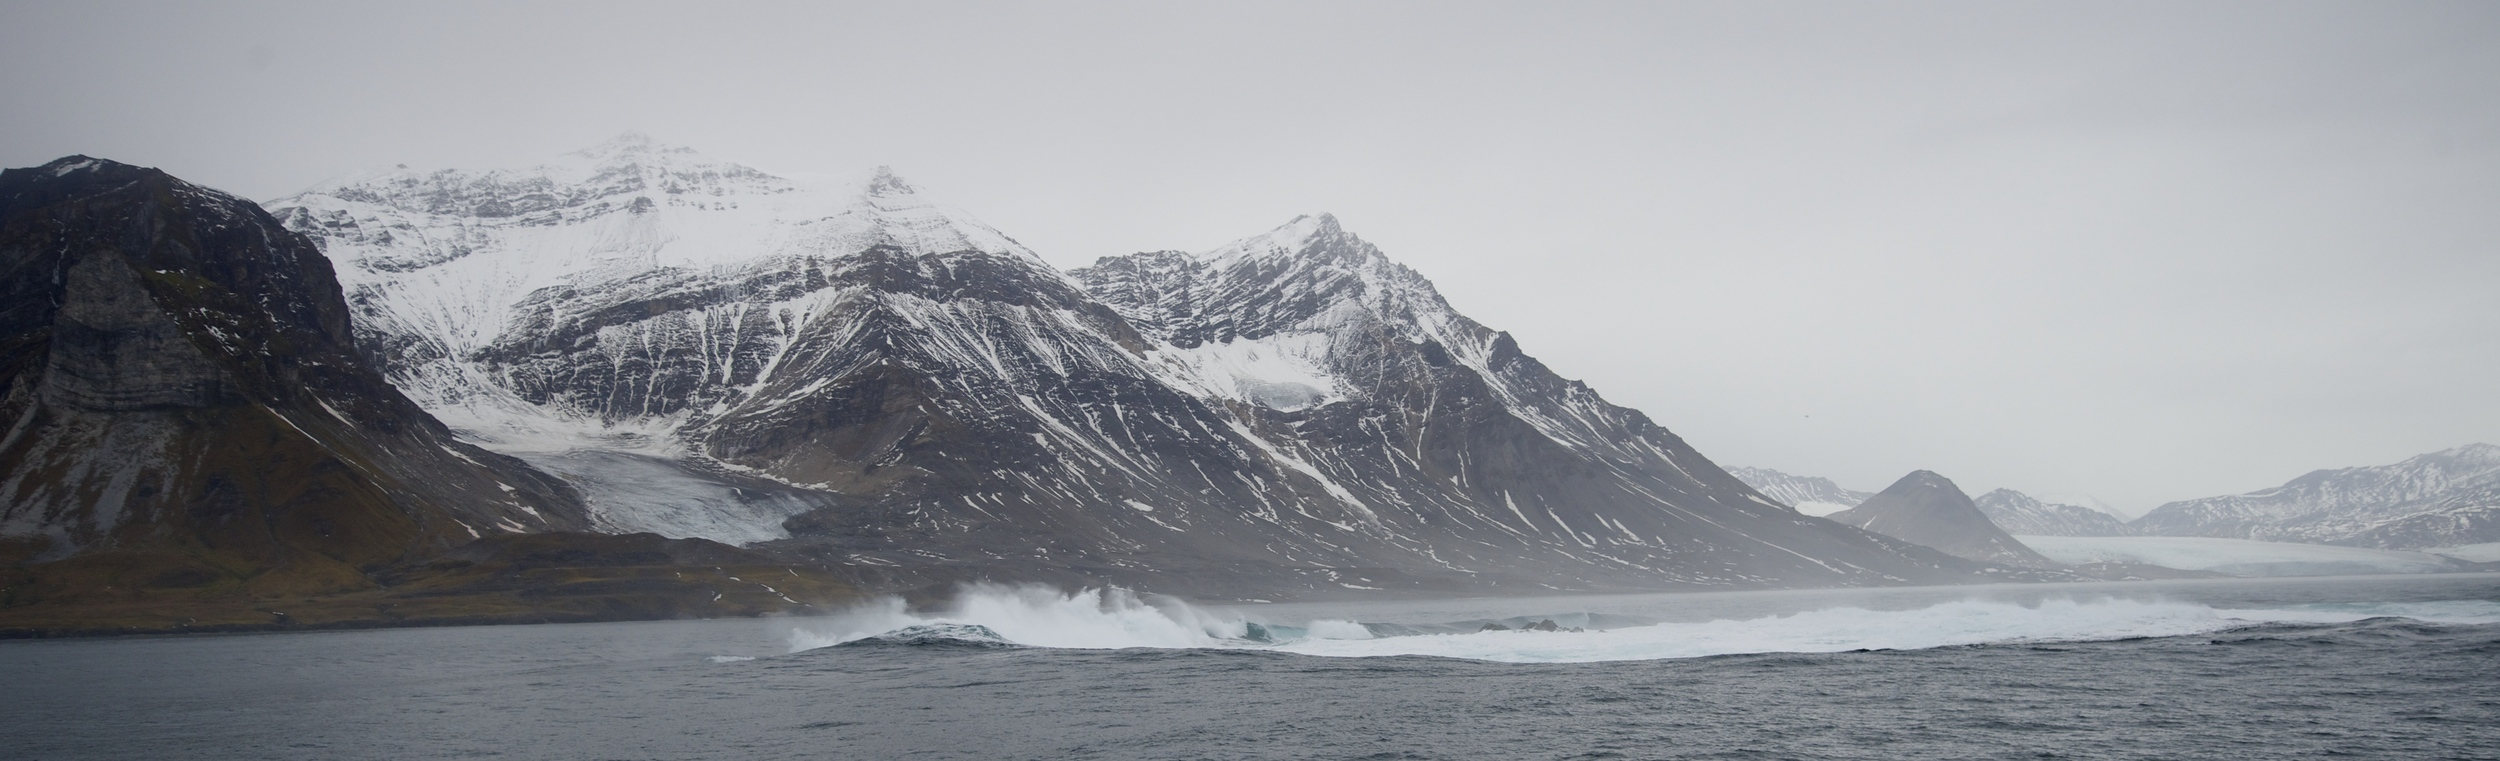 Leaving Isfjorden, there is an inconsistency in the sea floor that creates a perpetual wave